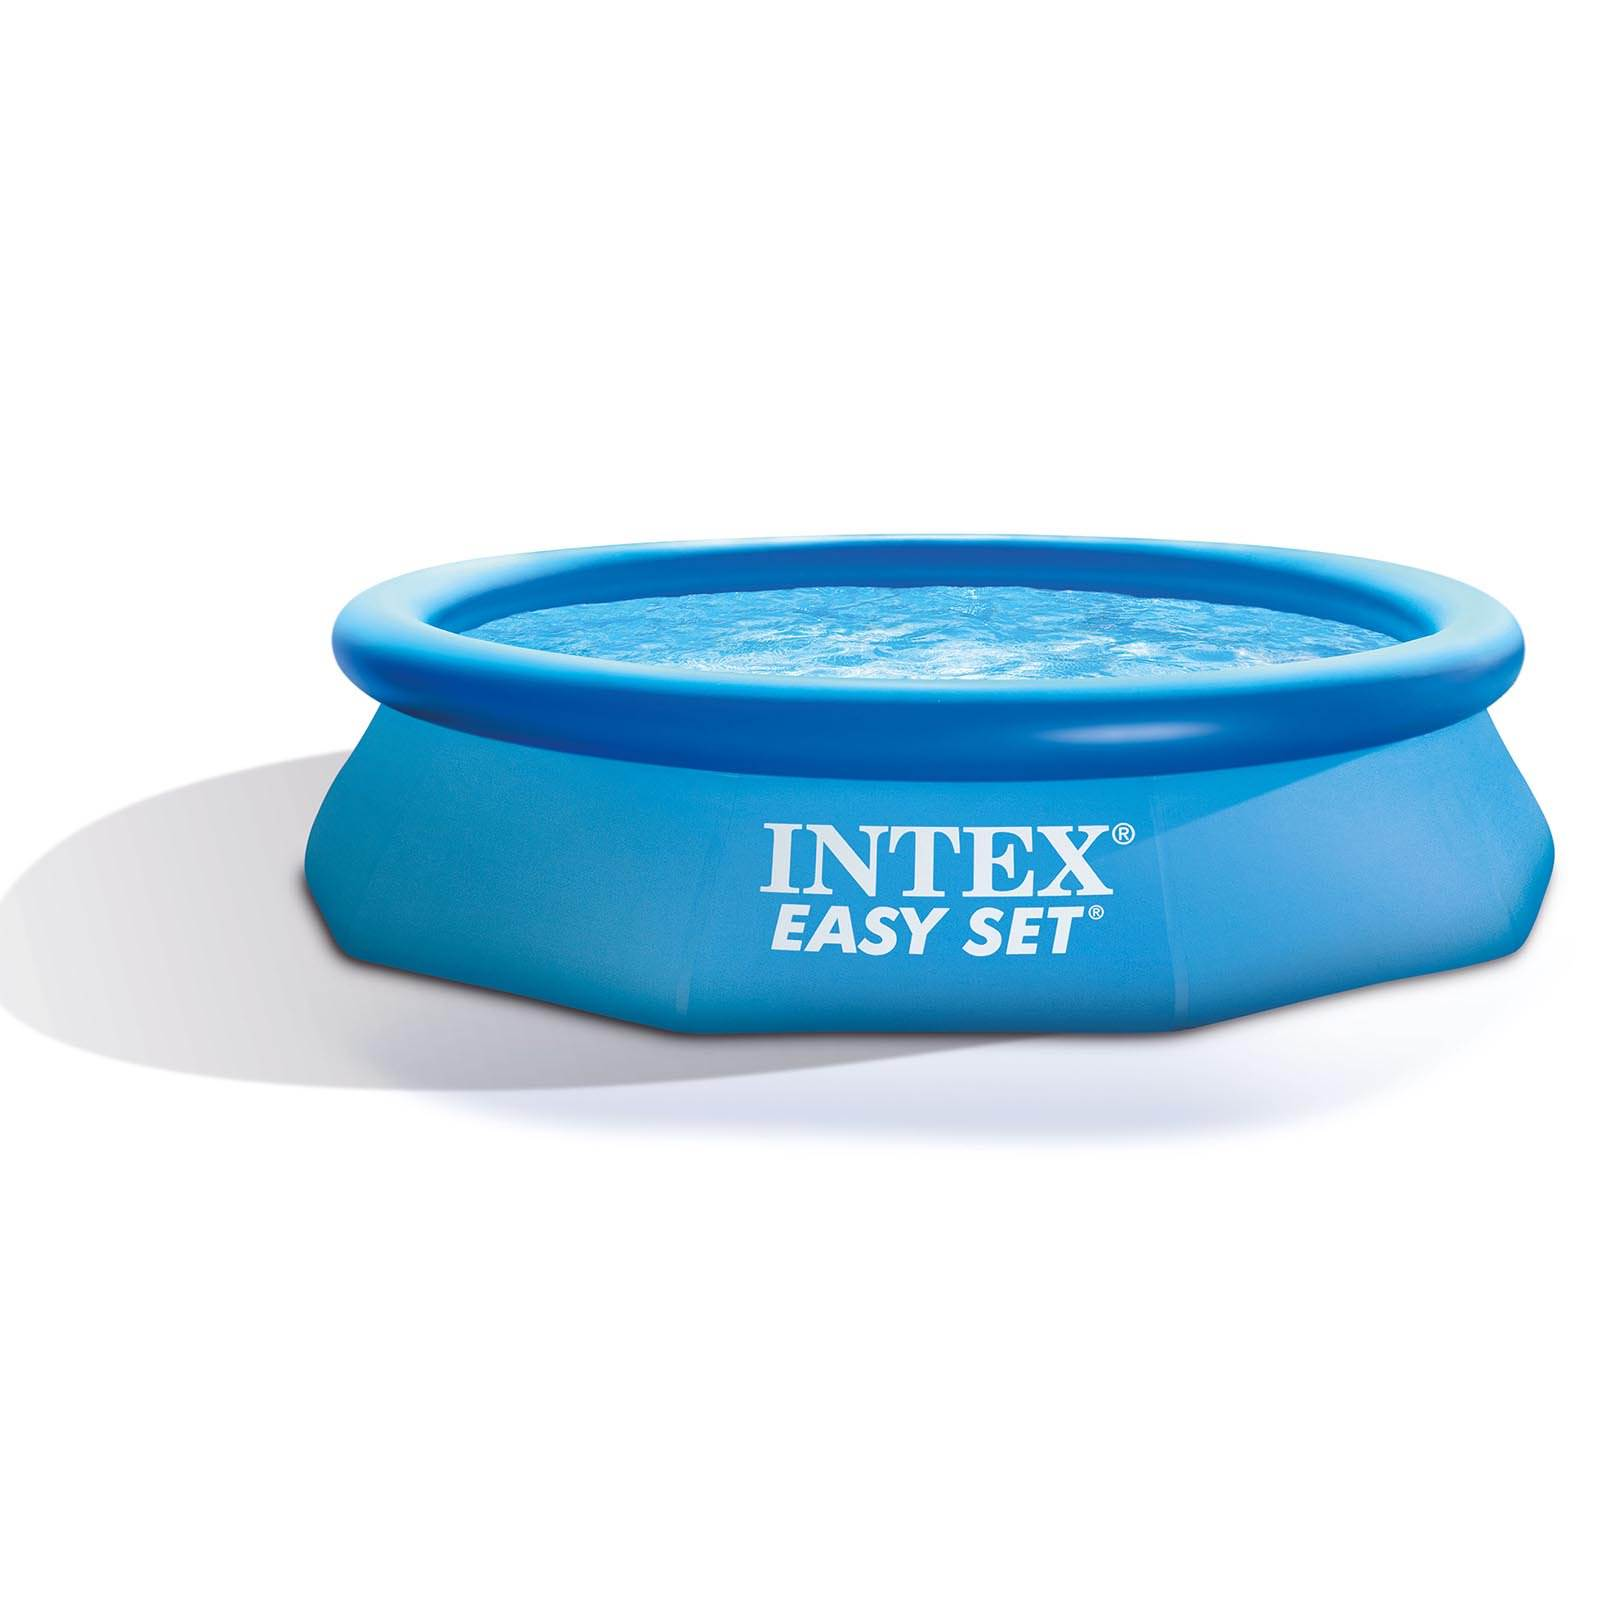 INTEX 10ft x 30in Easy Set Pool in United States